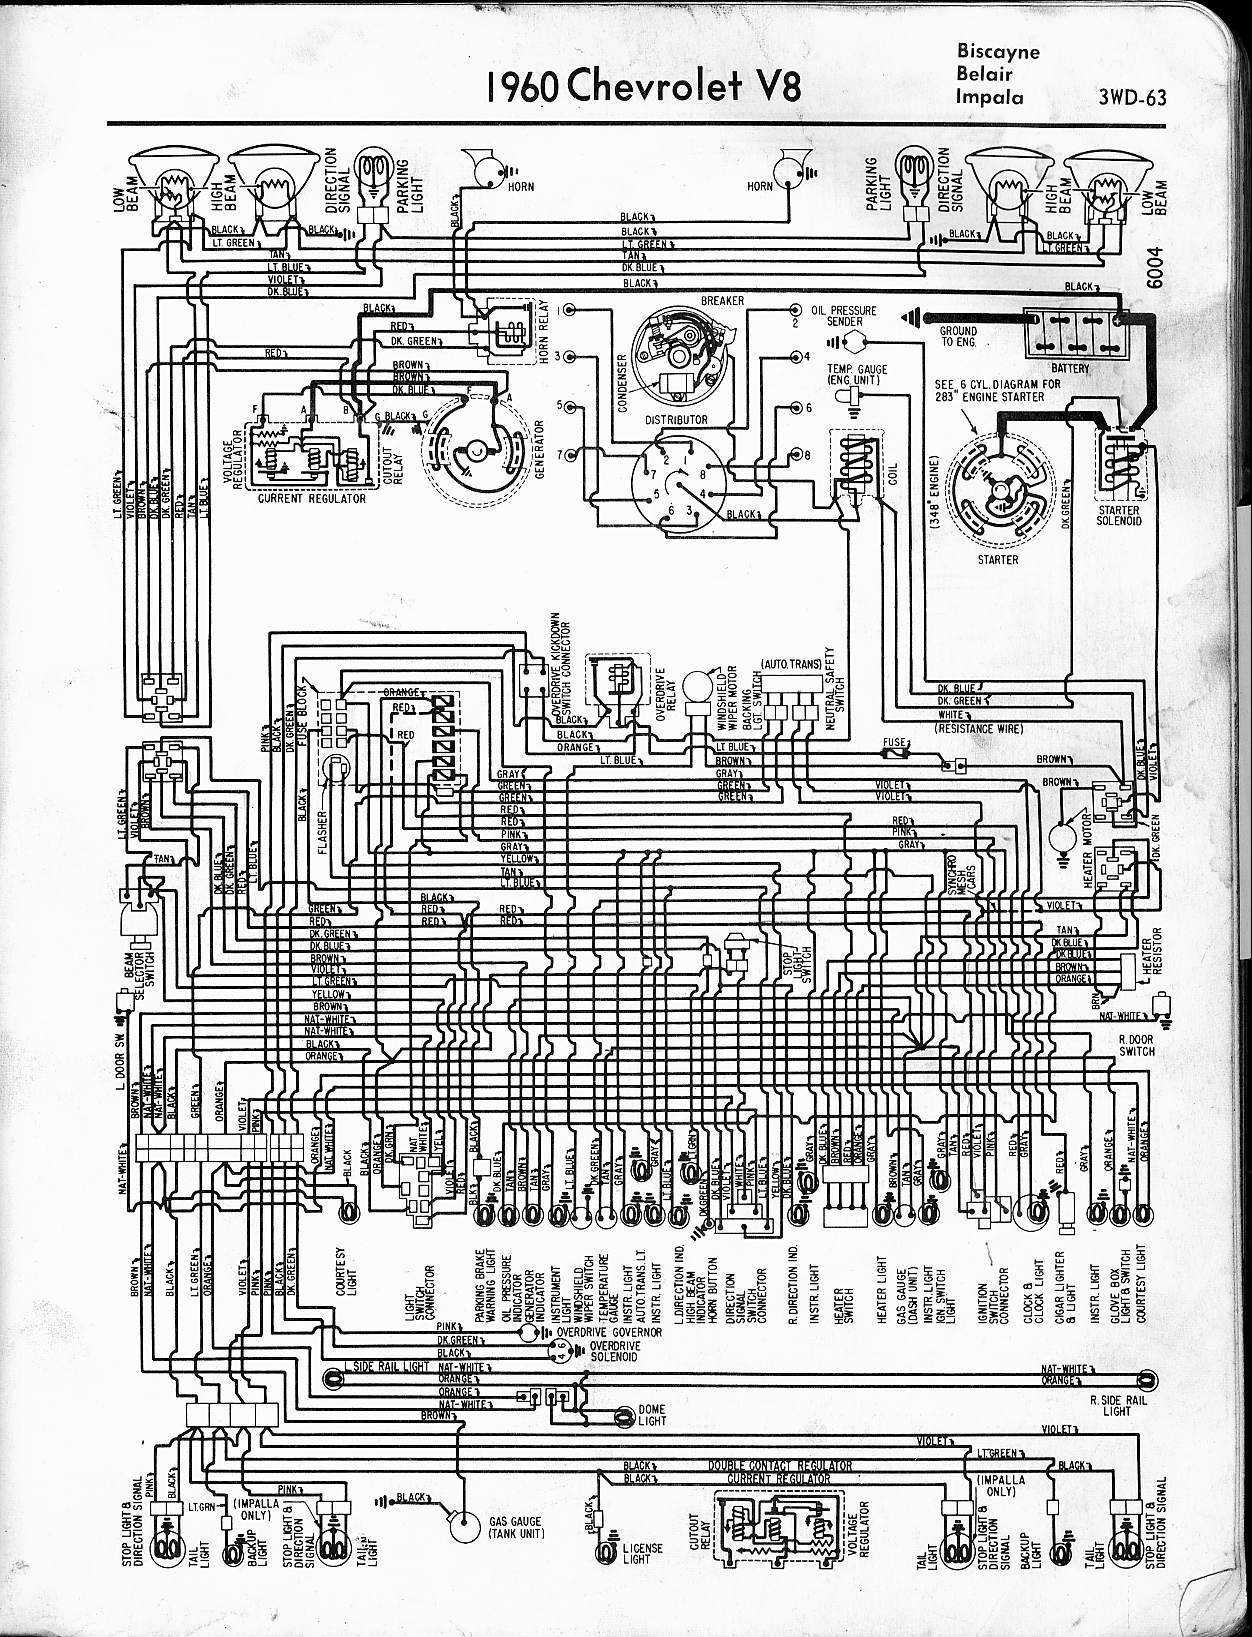 2004 Chevy Impala Engine Diagram Chevrolet Sedan 1964 Ss 57 65 Wiring Diagrams Of